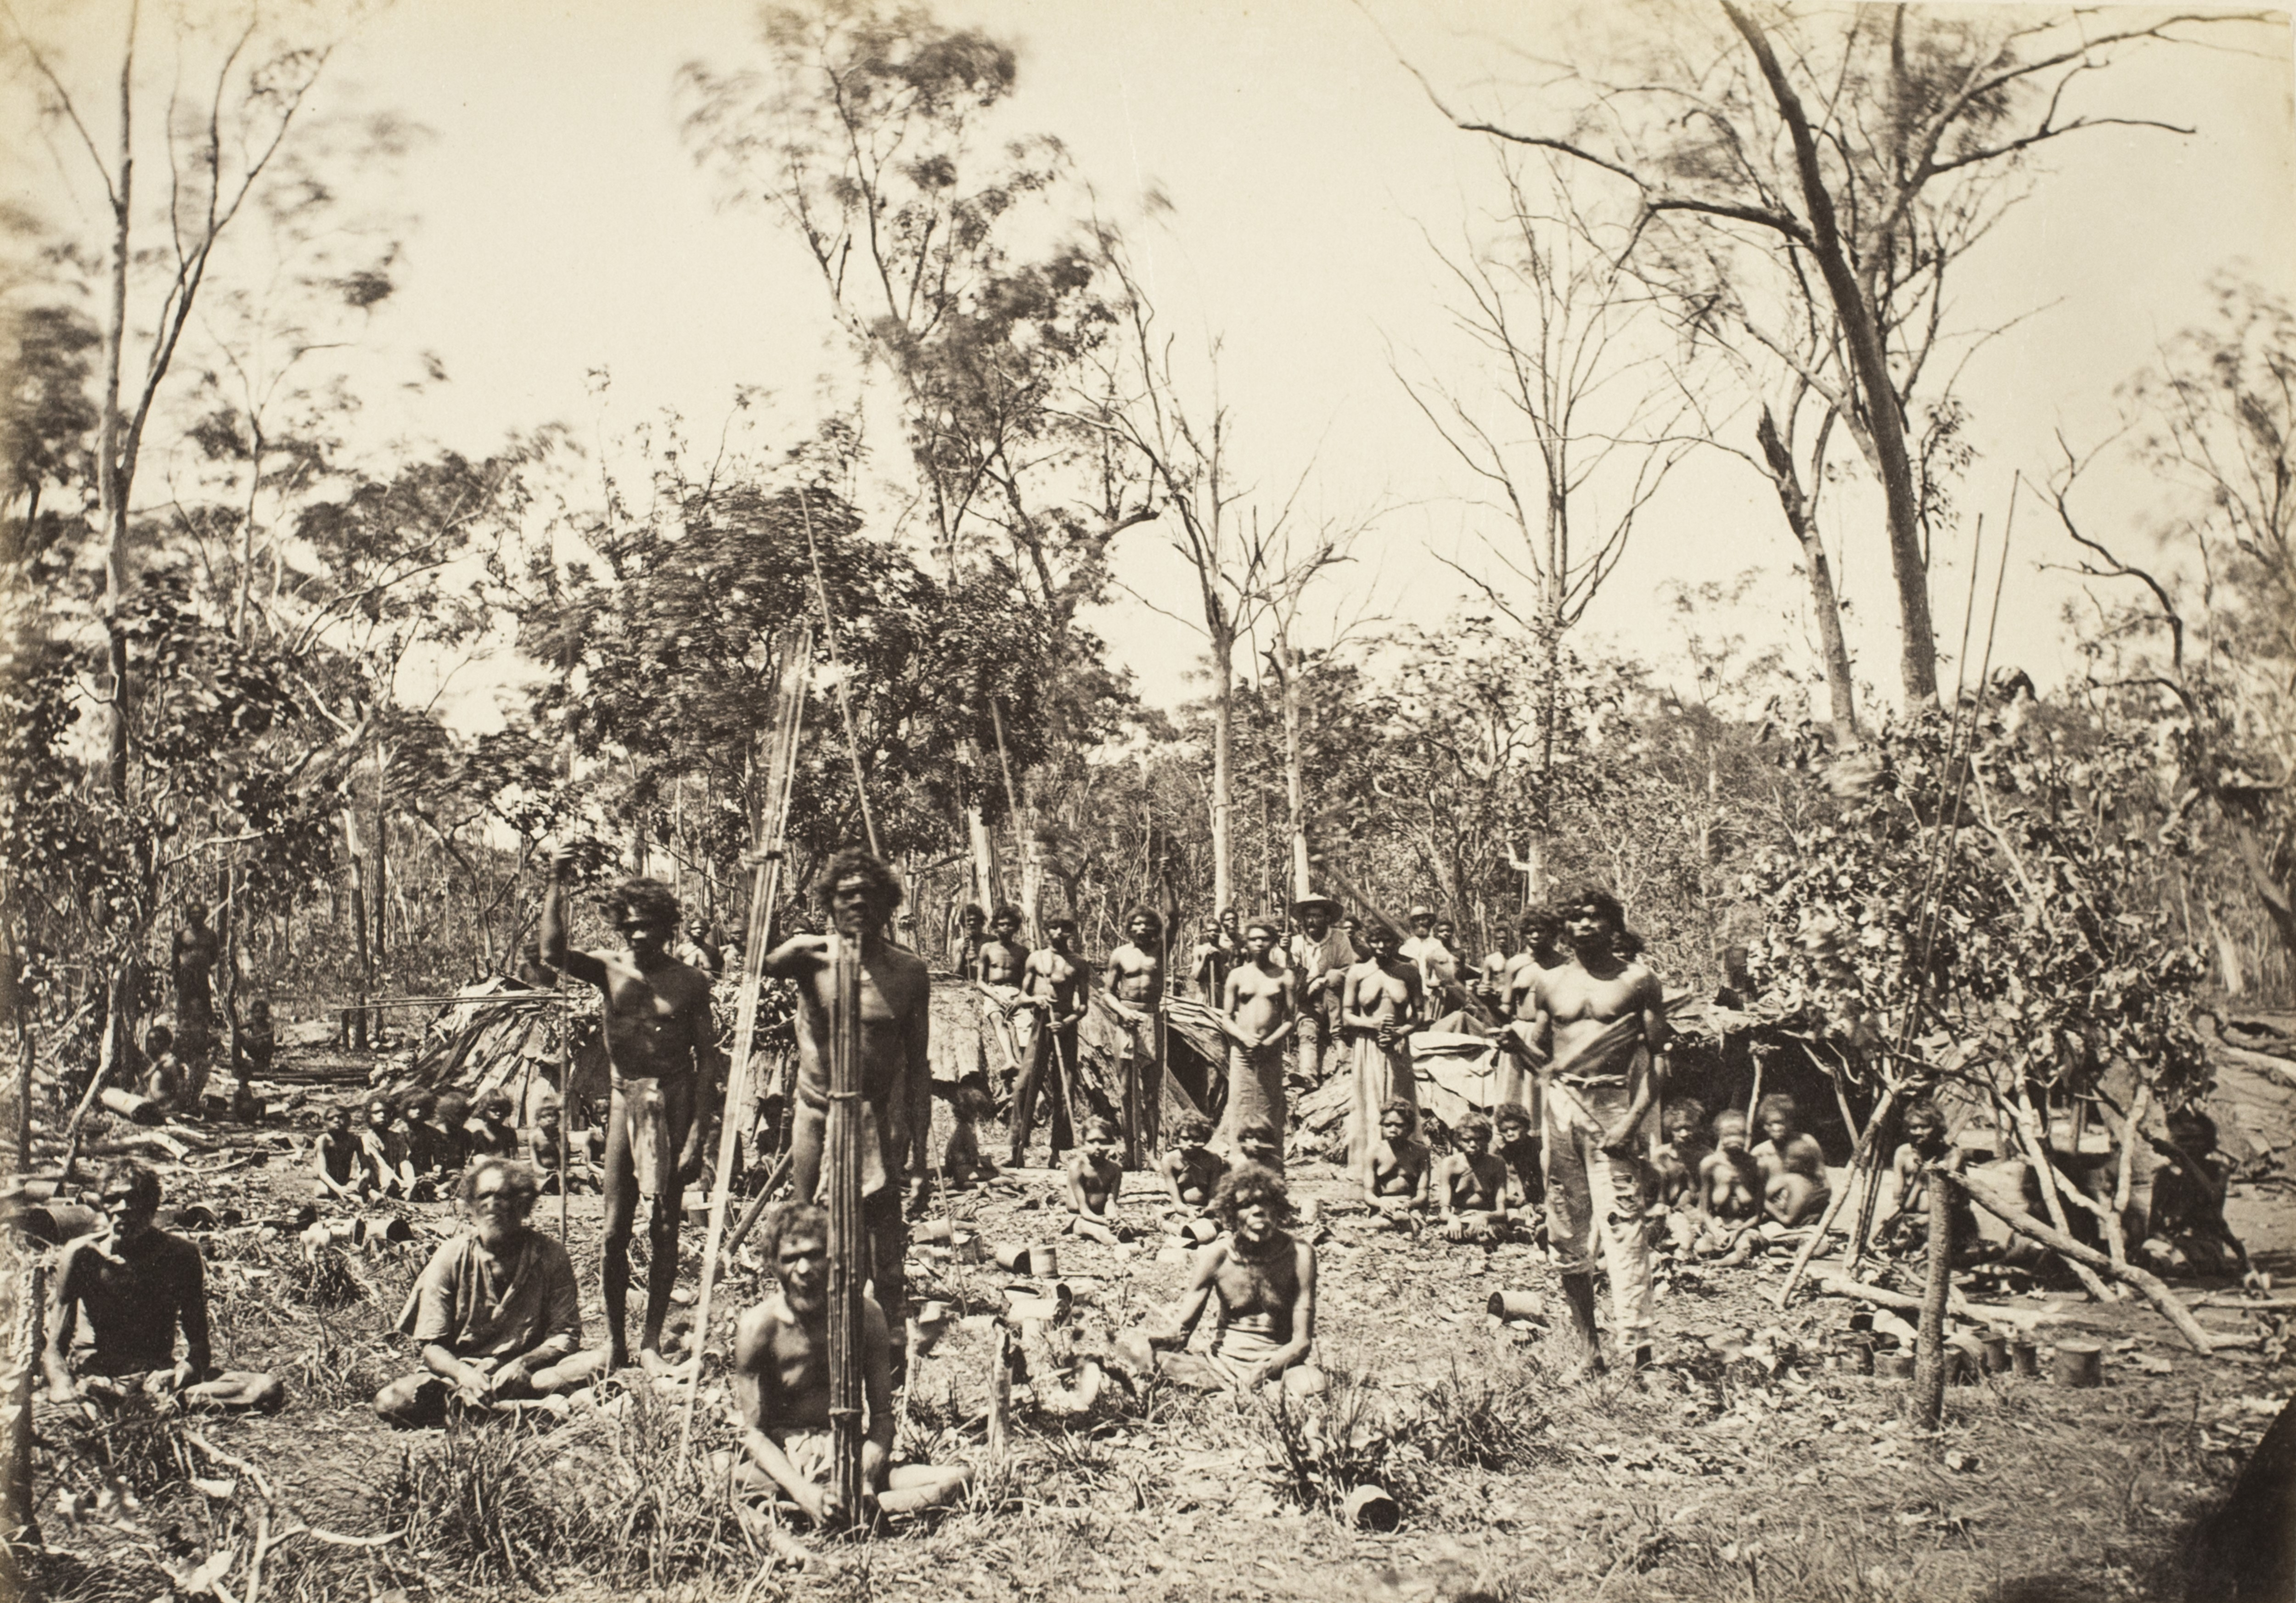 Depicts a group of Aboriginal women, men and children in a camp setting in the bush.